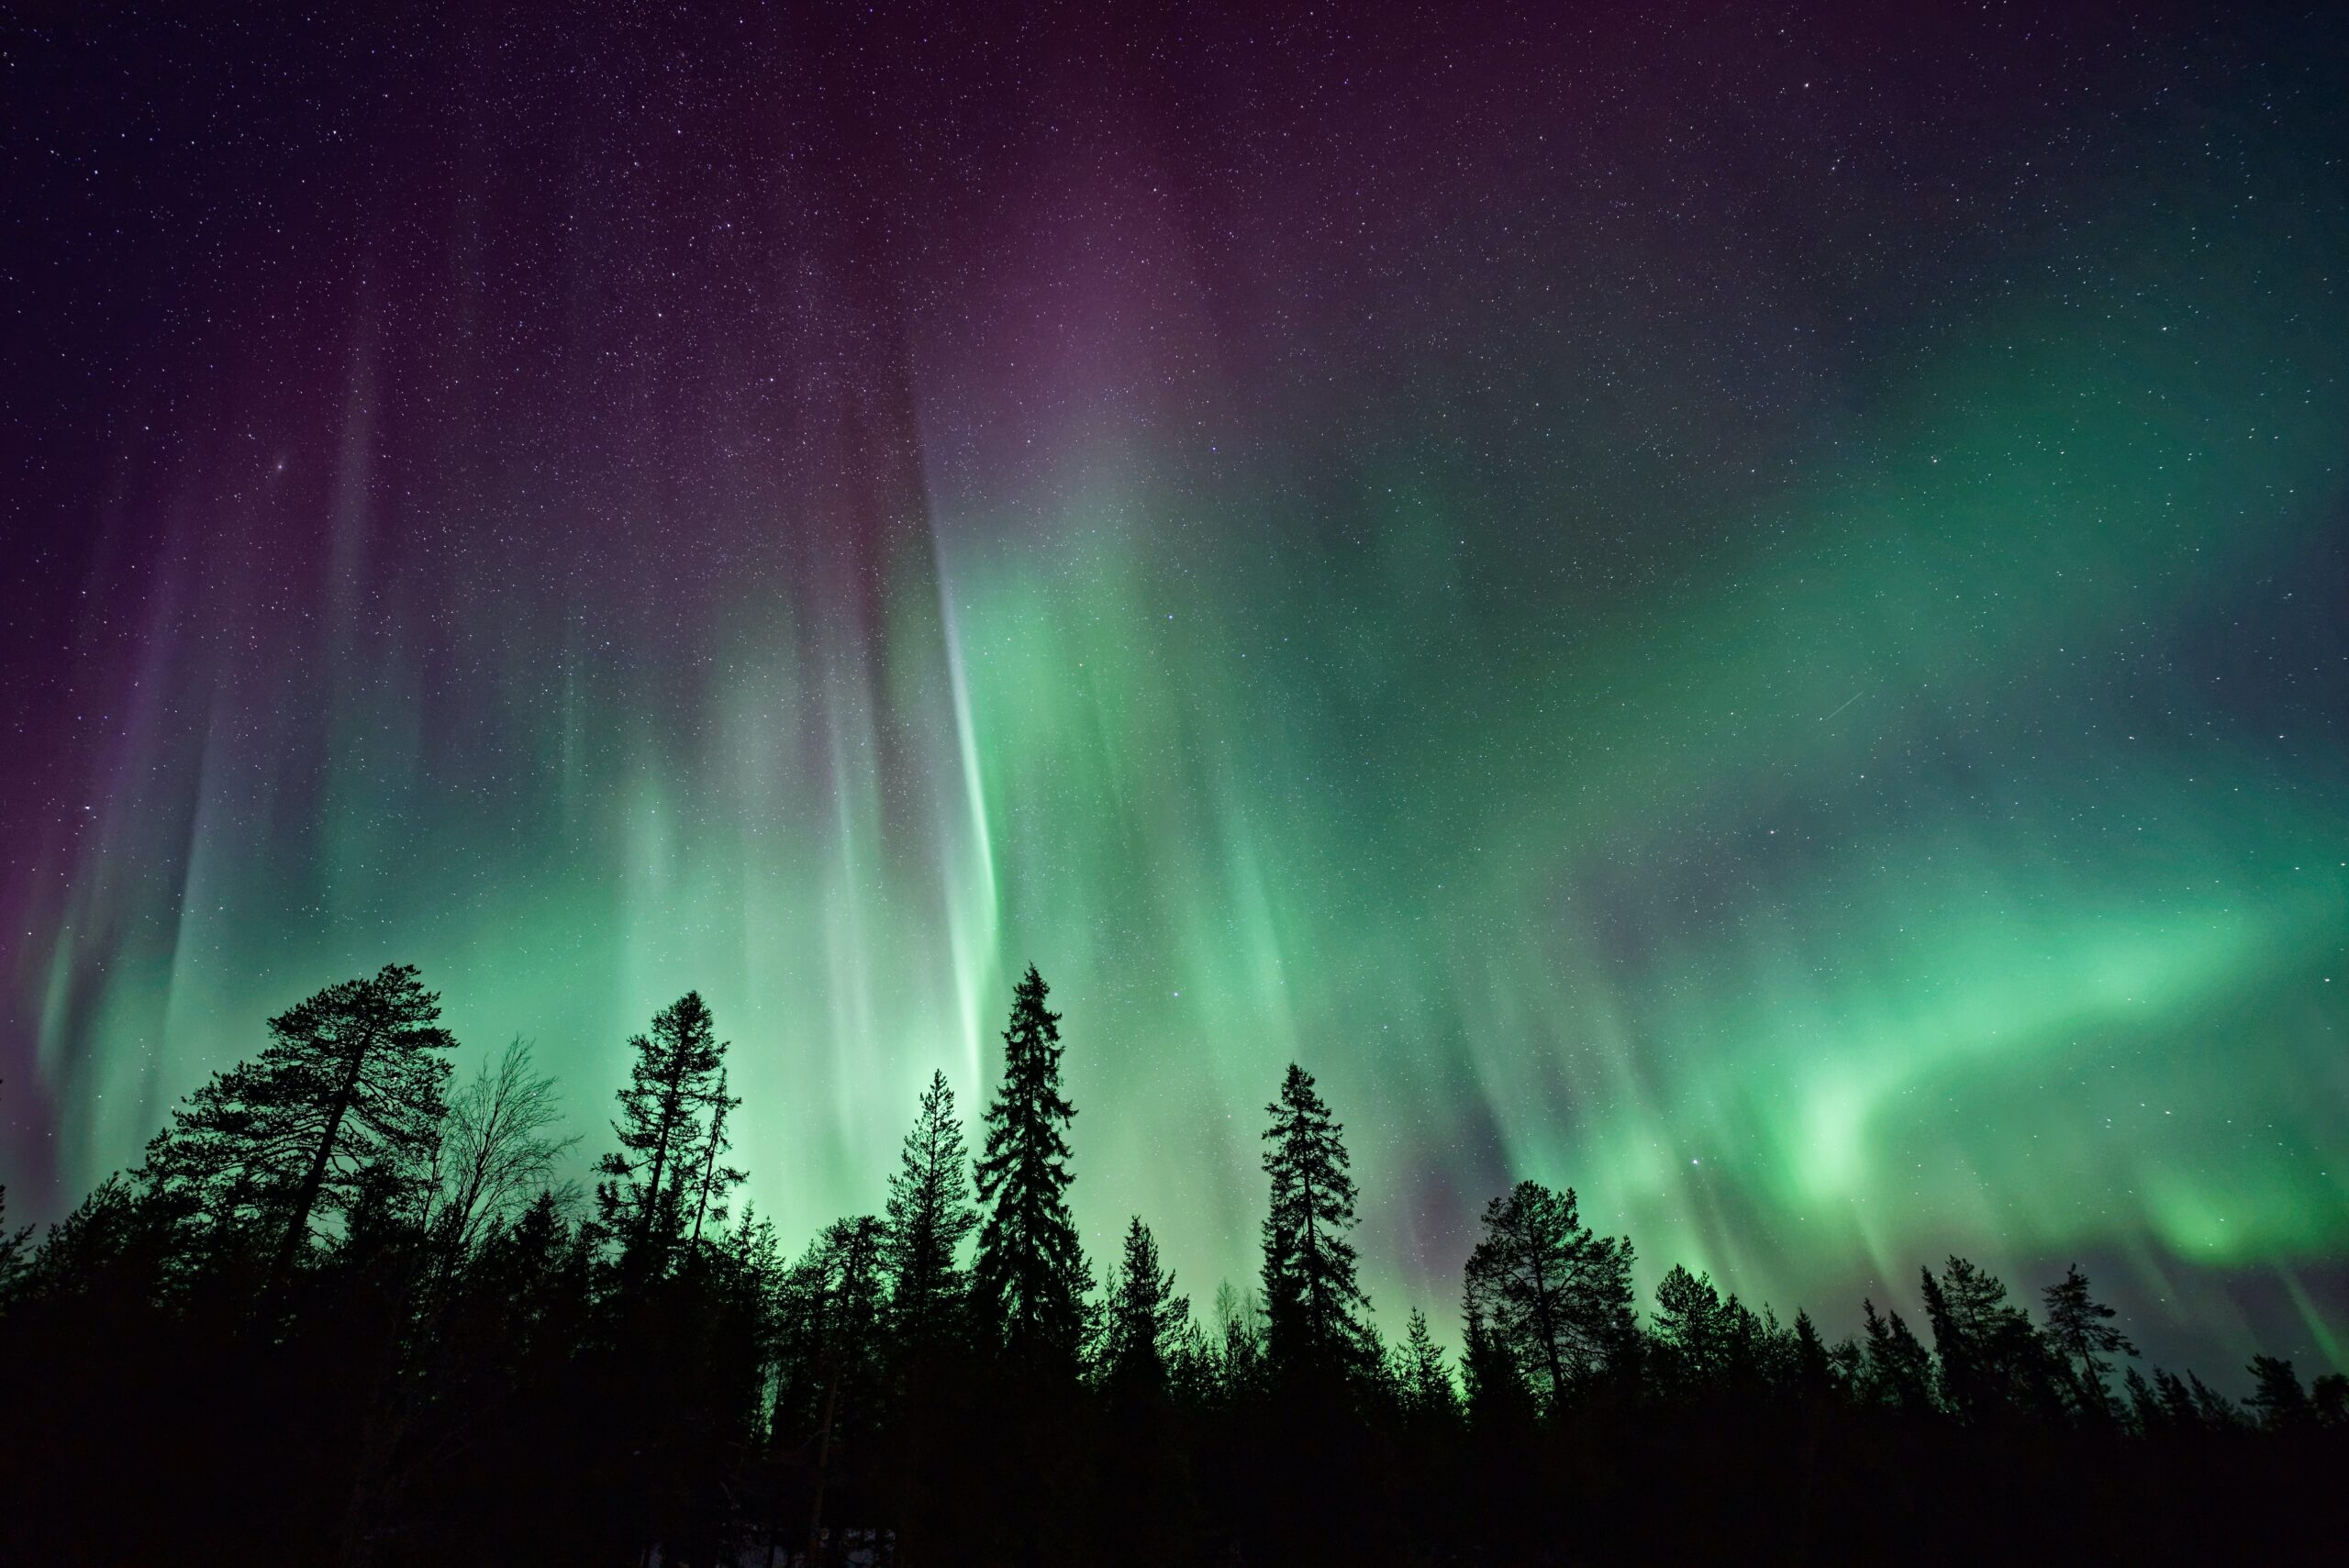 See The Northern Lights On Our 5 Day Golden Circle, Jökulsárlón & Blue Lagoon Tour Package